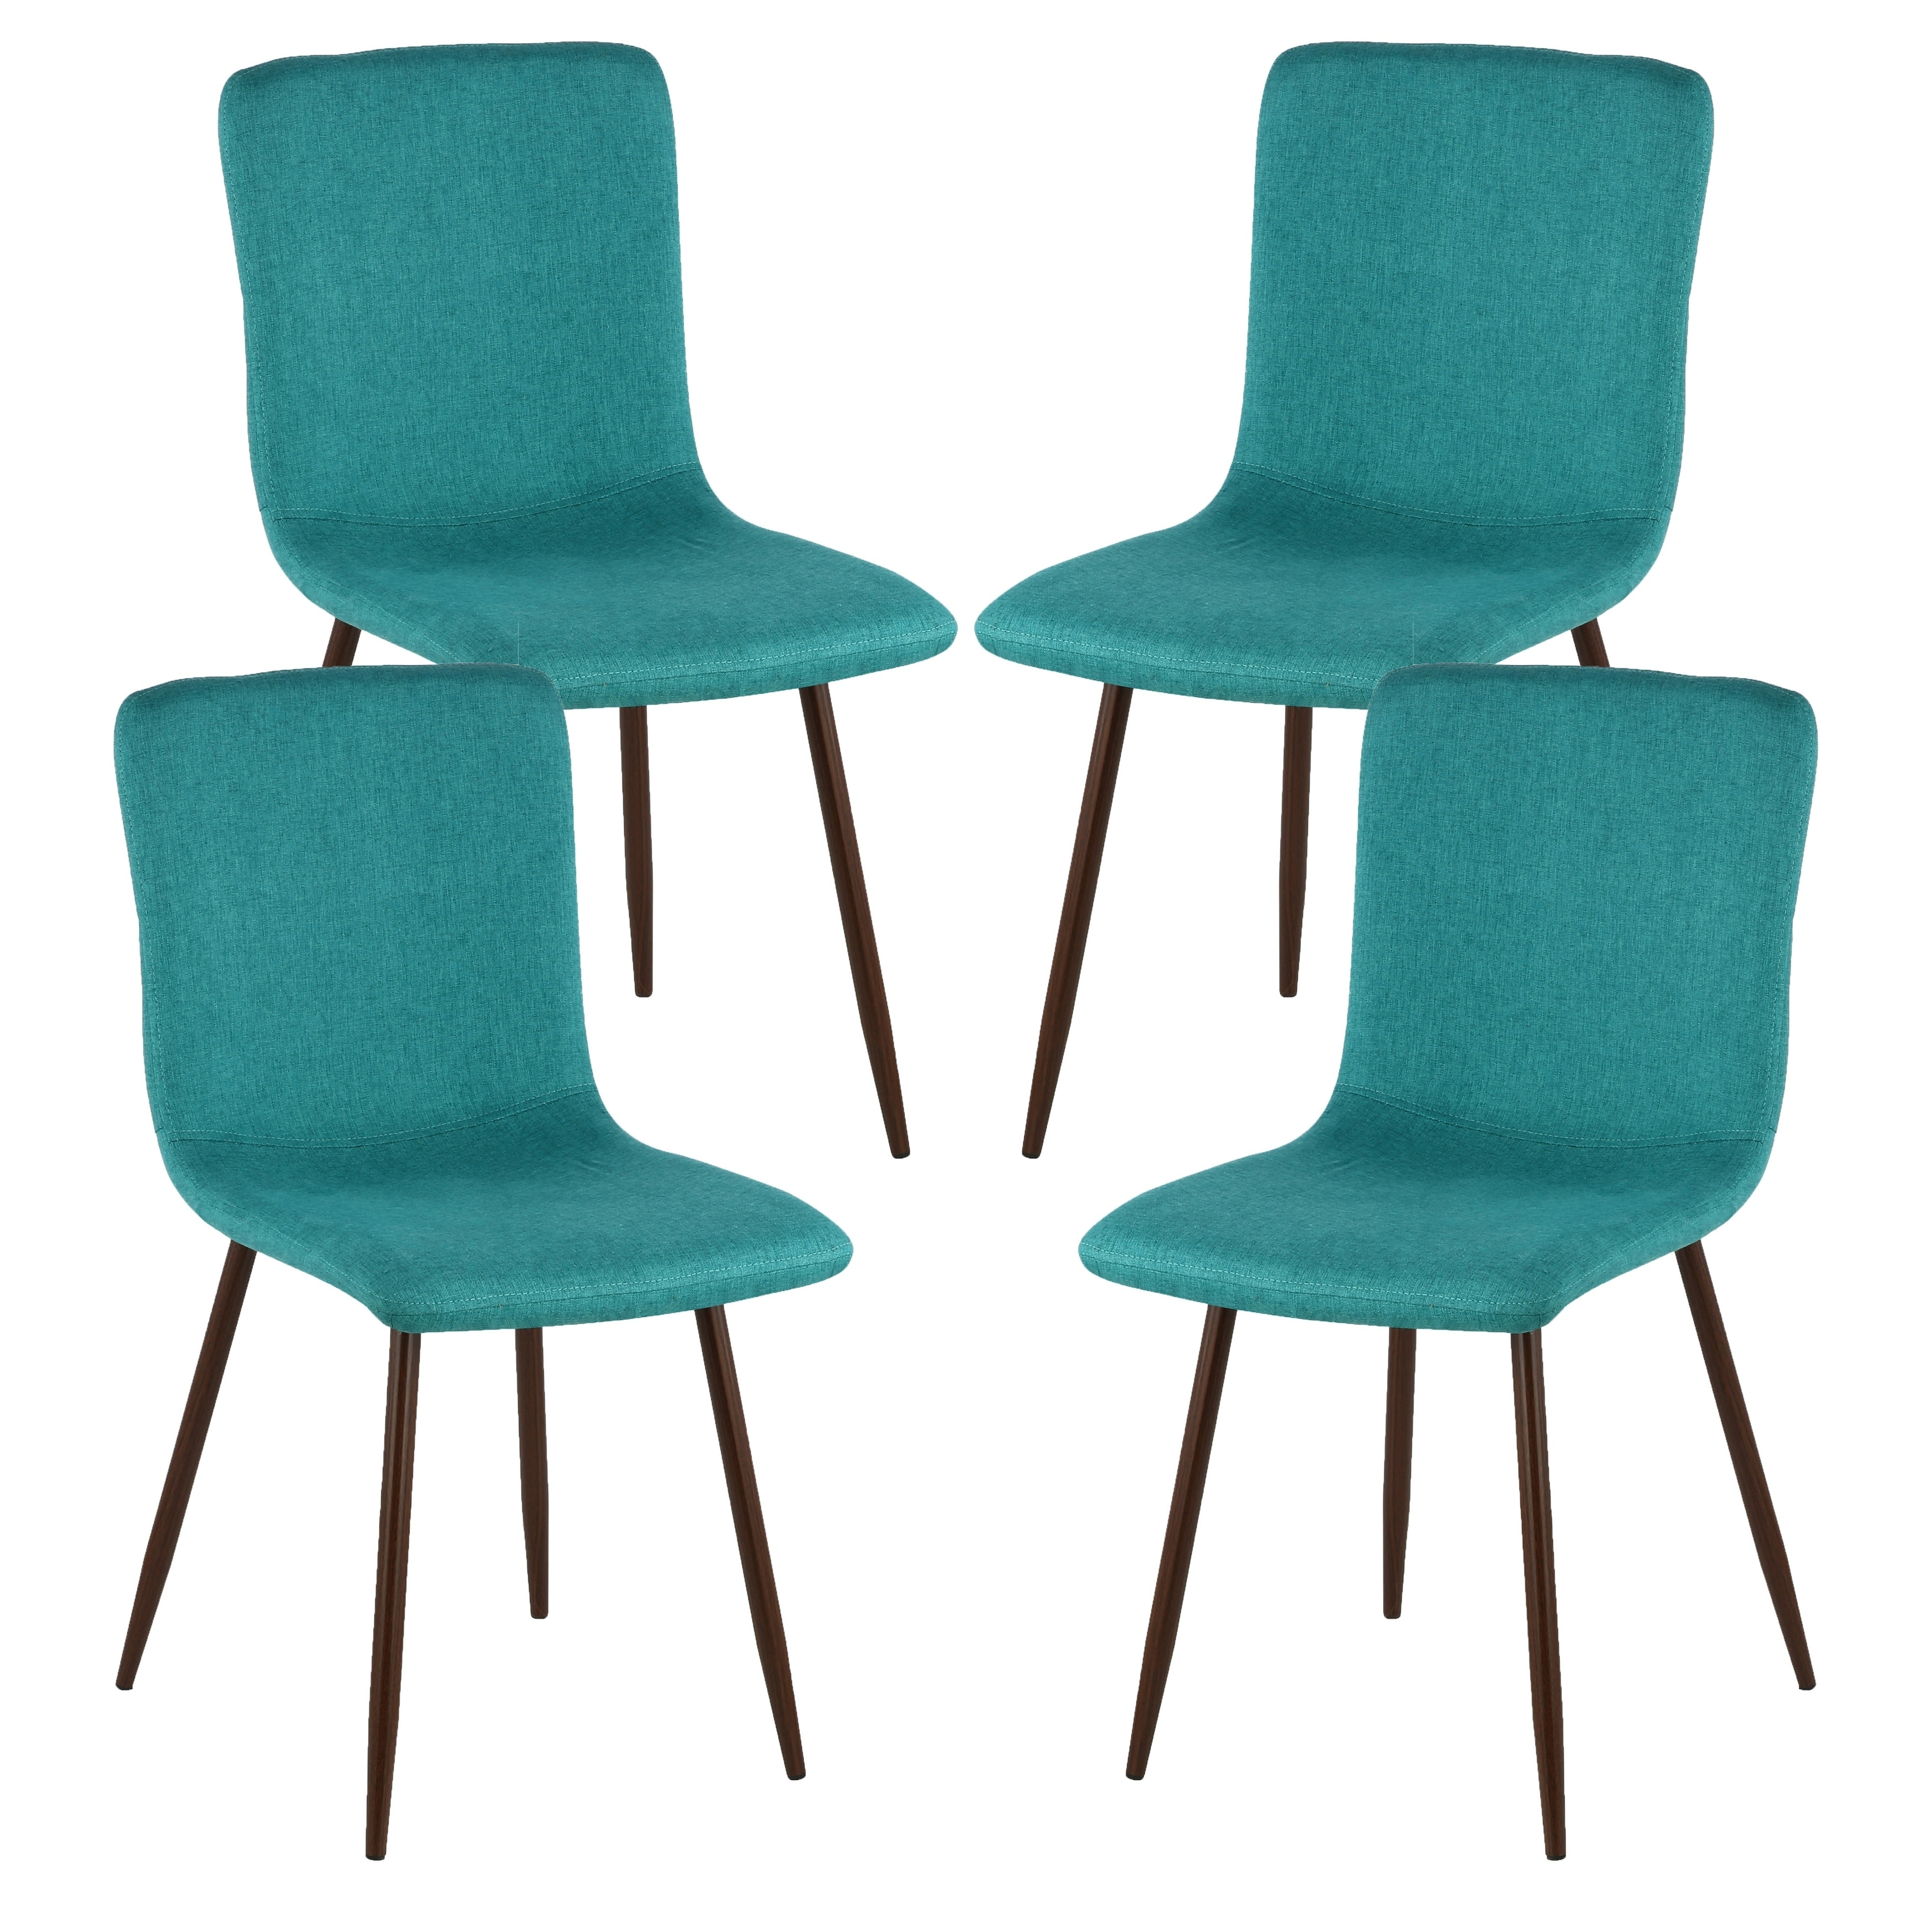 Buy Green Kitchen & Dining Room Chairs Online at Overstock.com   Our ...